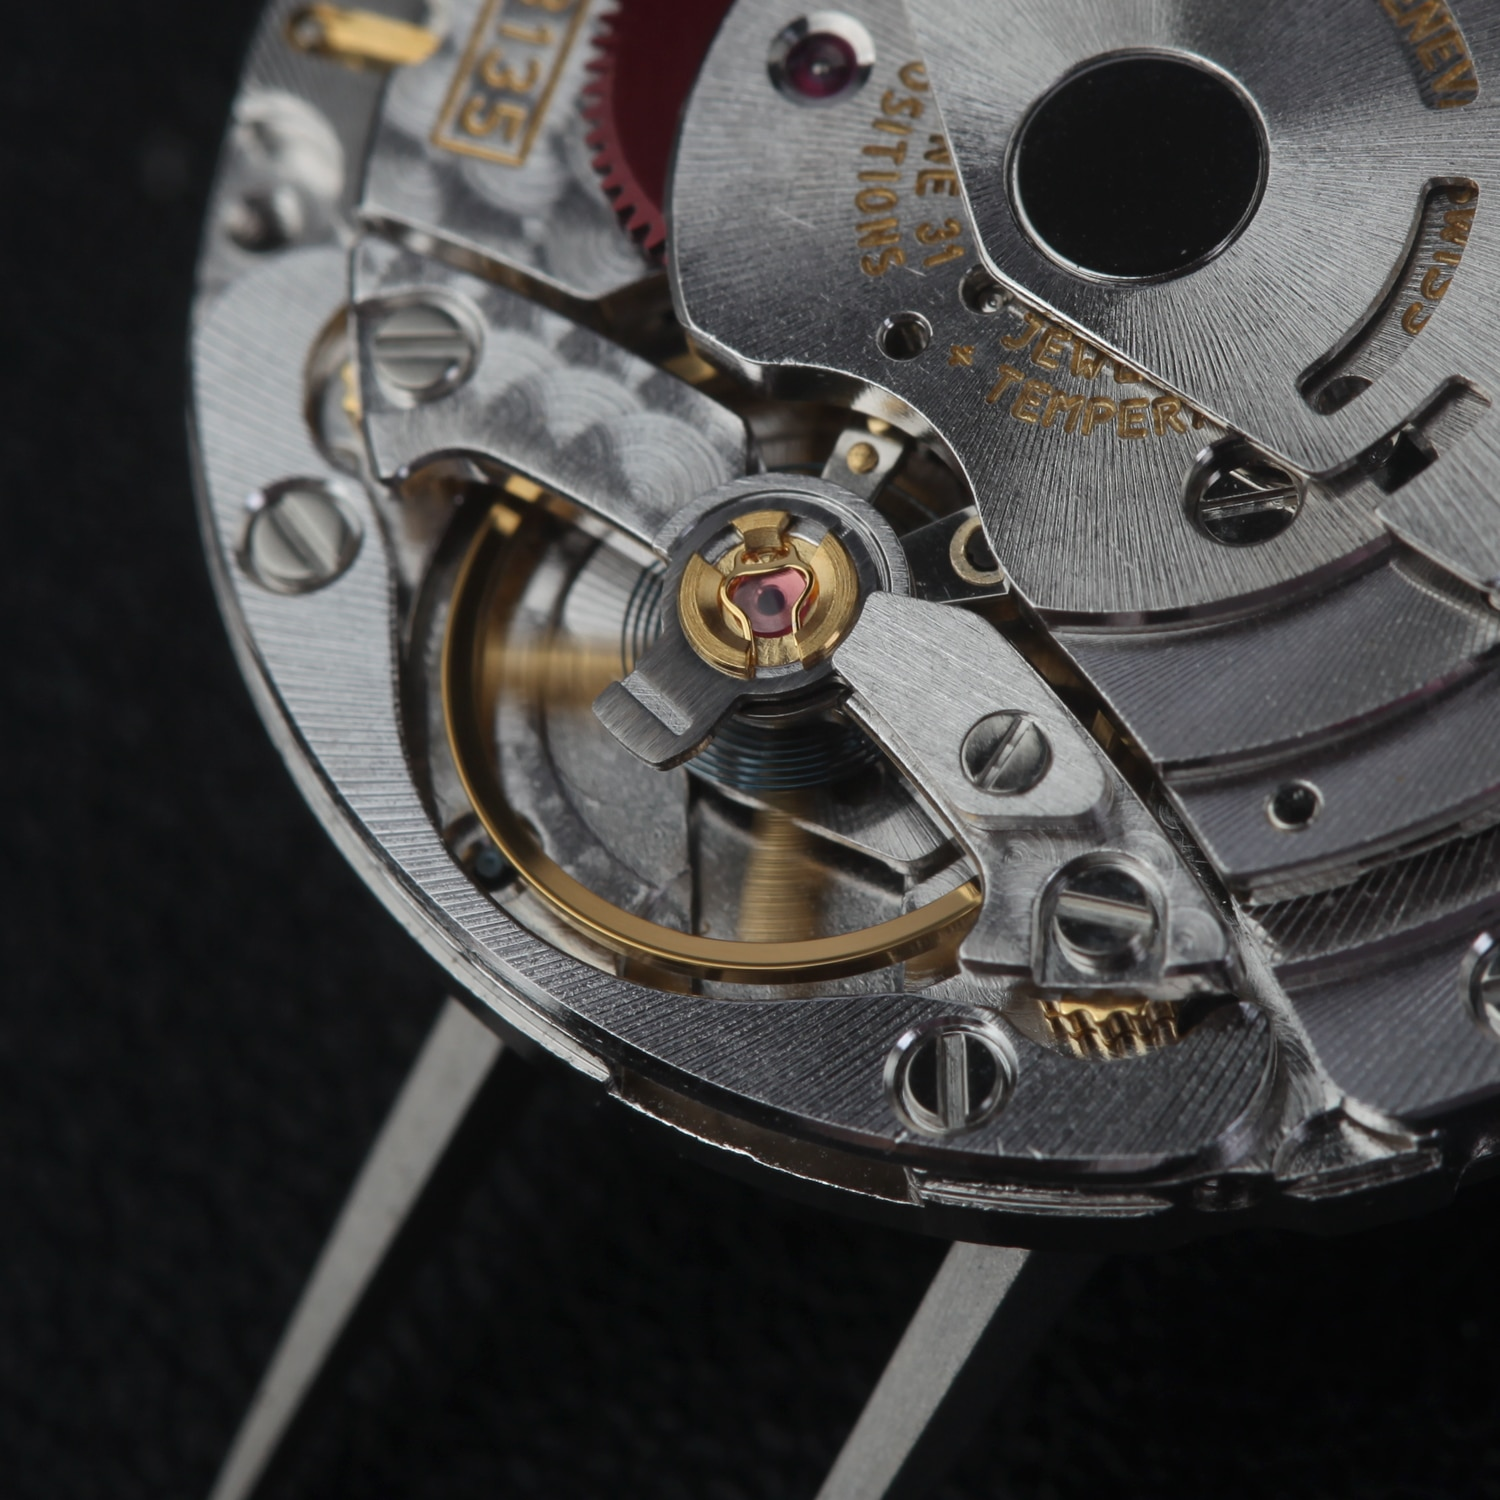 china made vr / zz 3135 movement for watch repair parts new edition 2021 reliable quality carving serial number